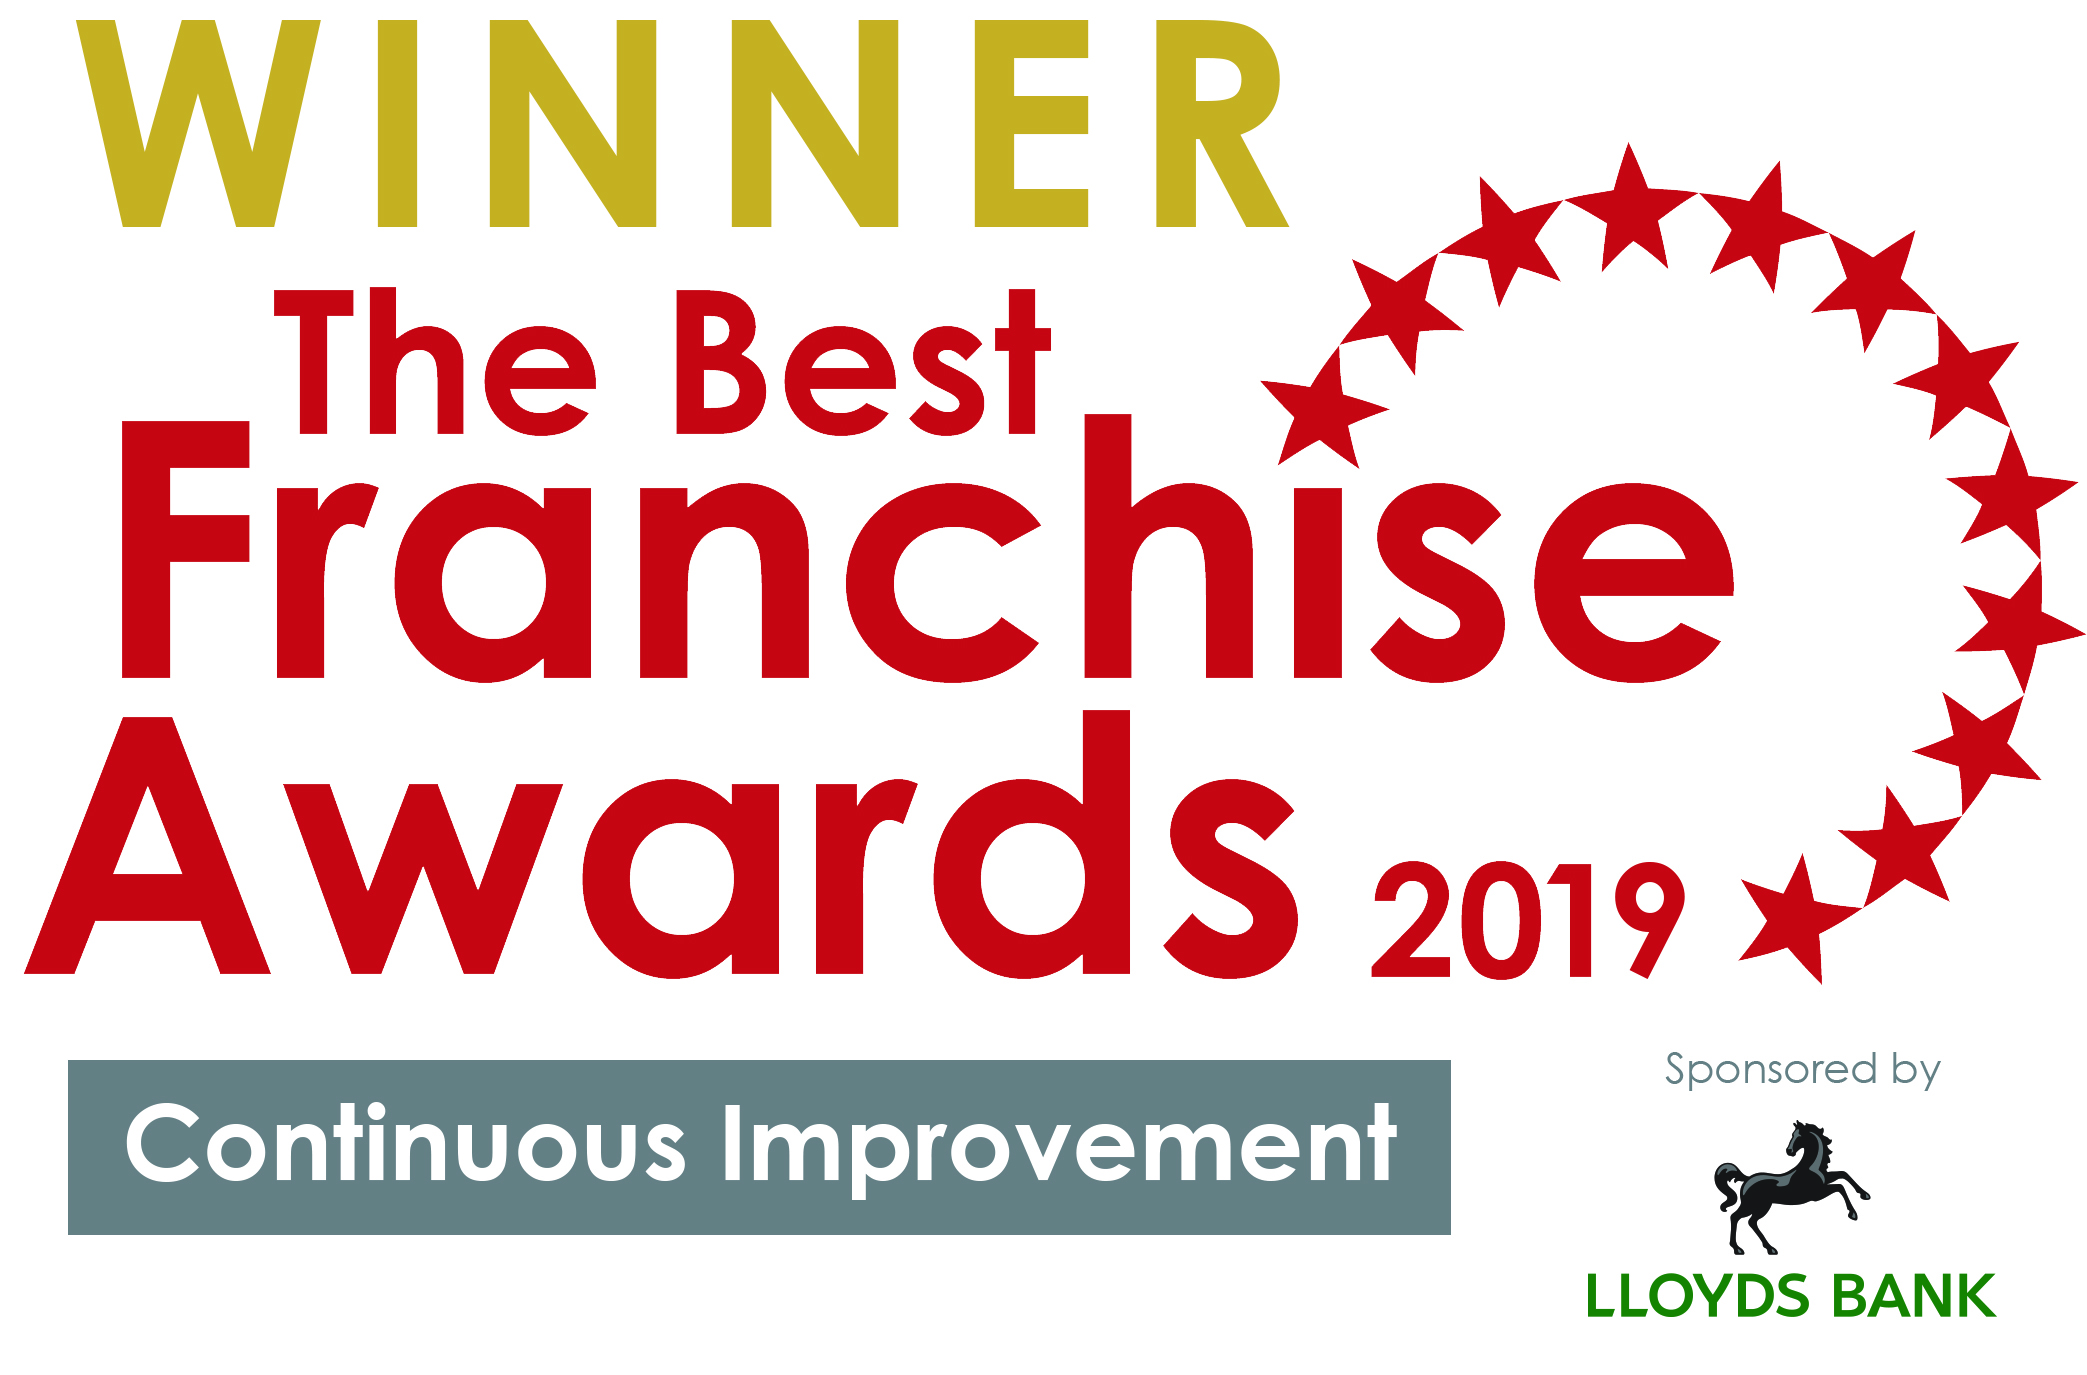 Winner of the best franchisse award 2019